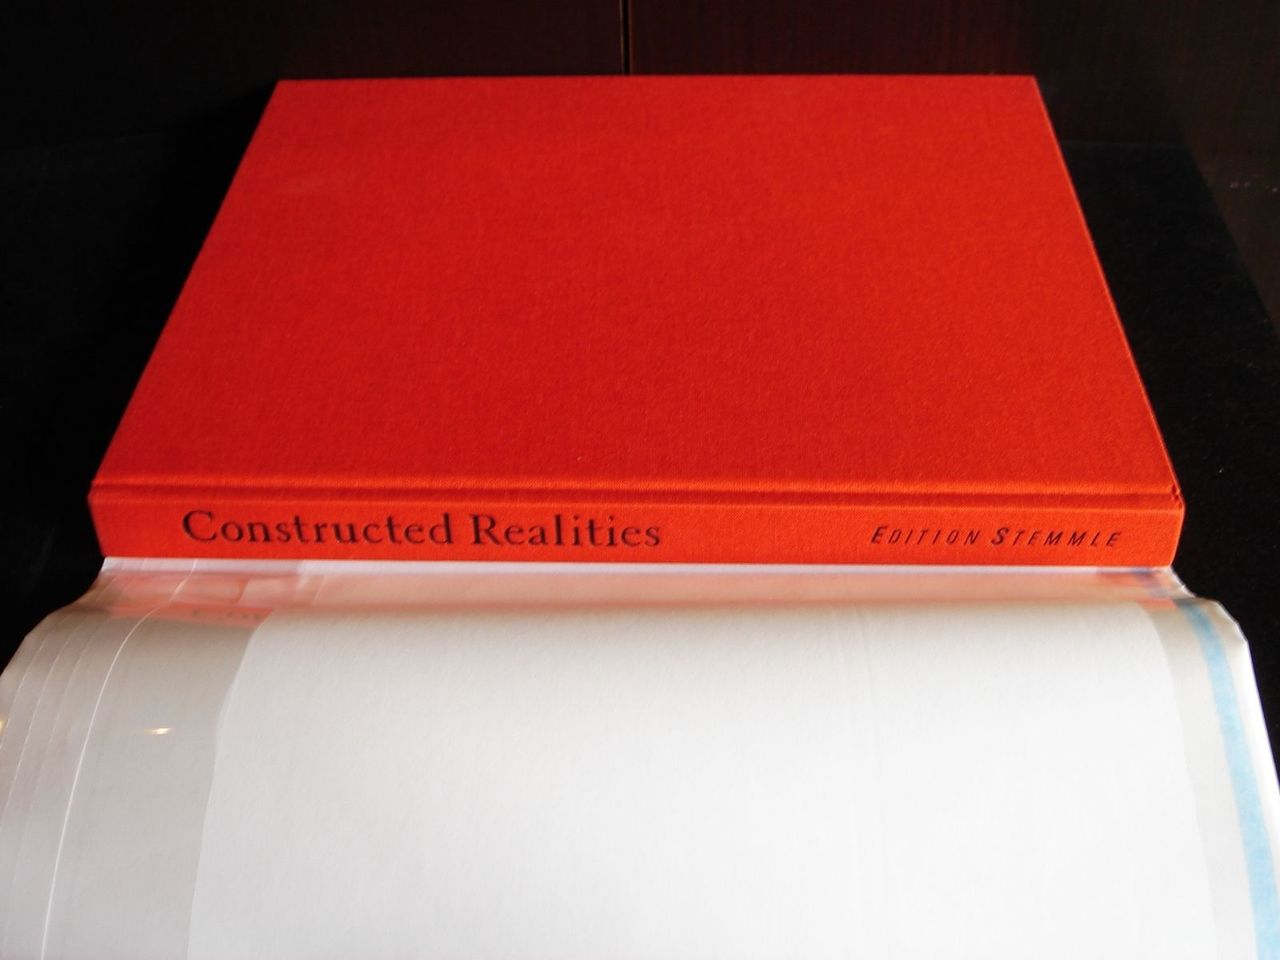 CONSTRUCTED REALITIES, by Michael Kohler - 1995